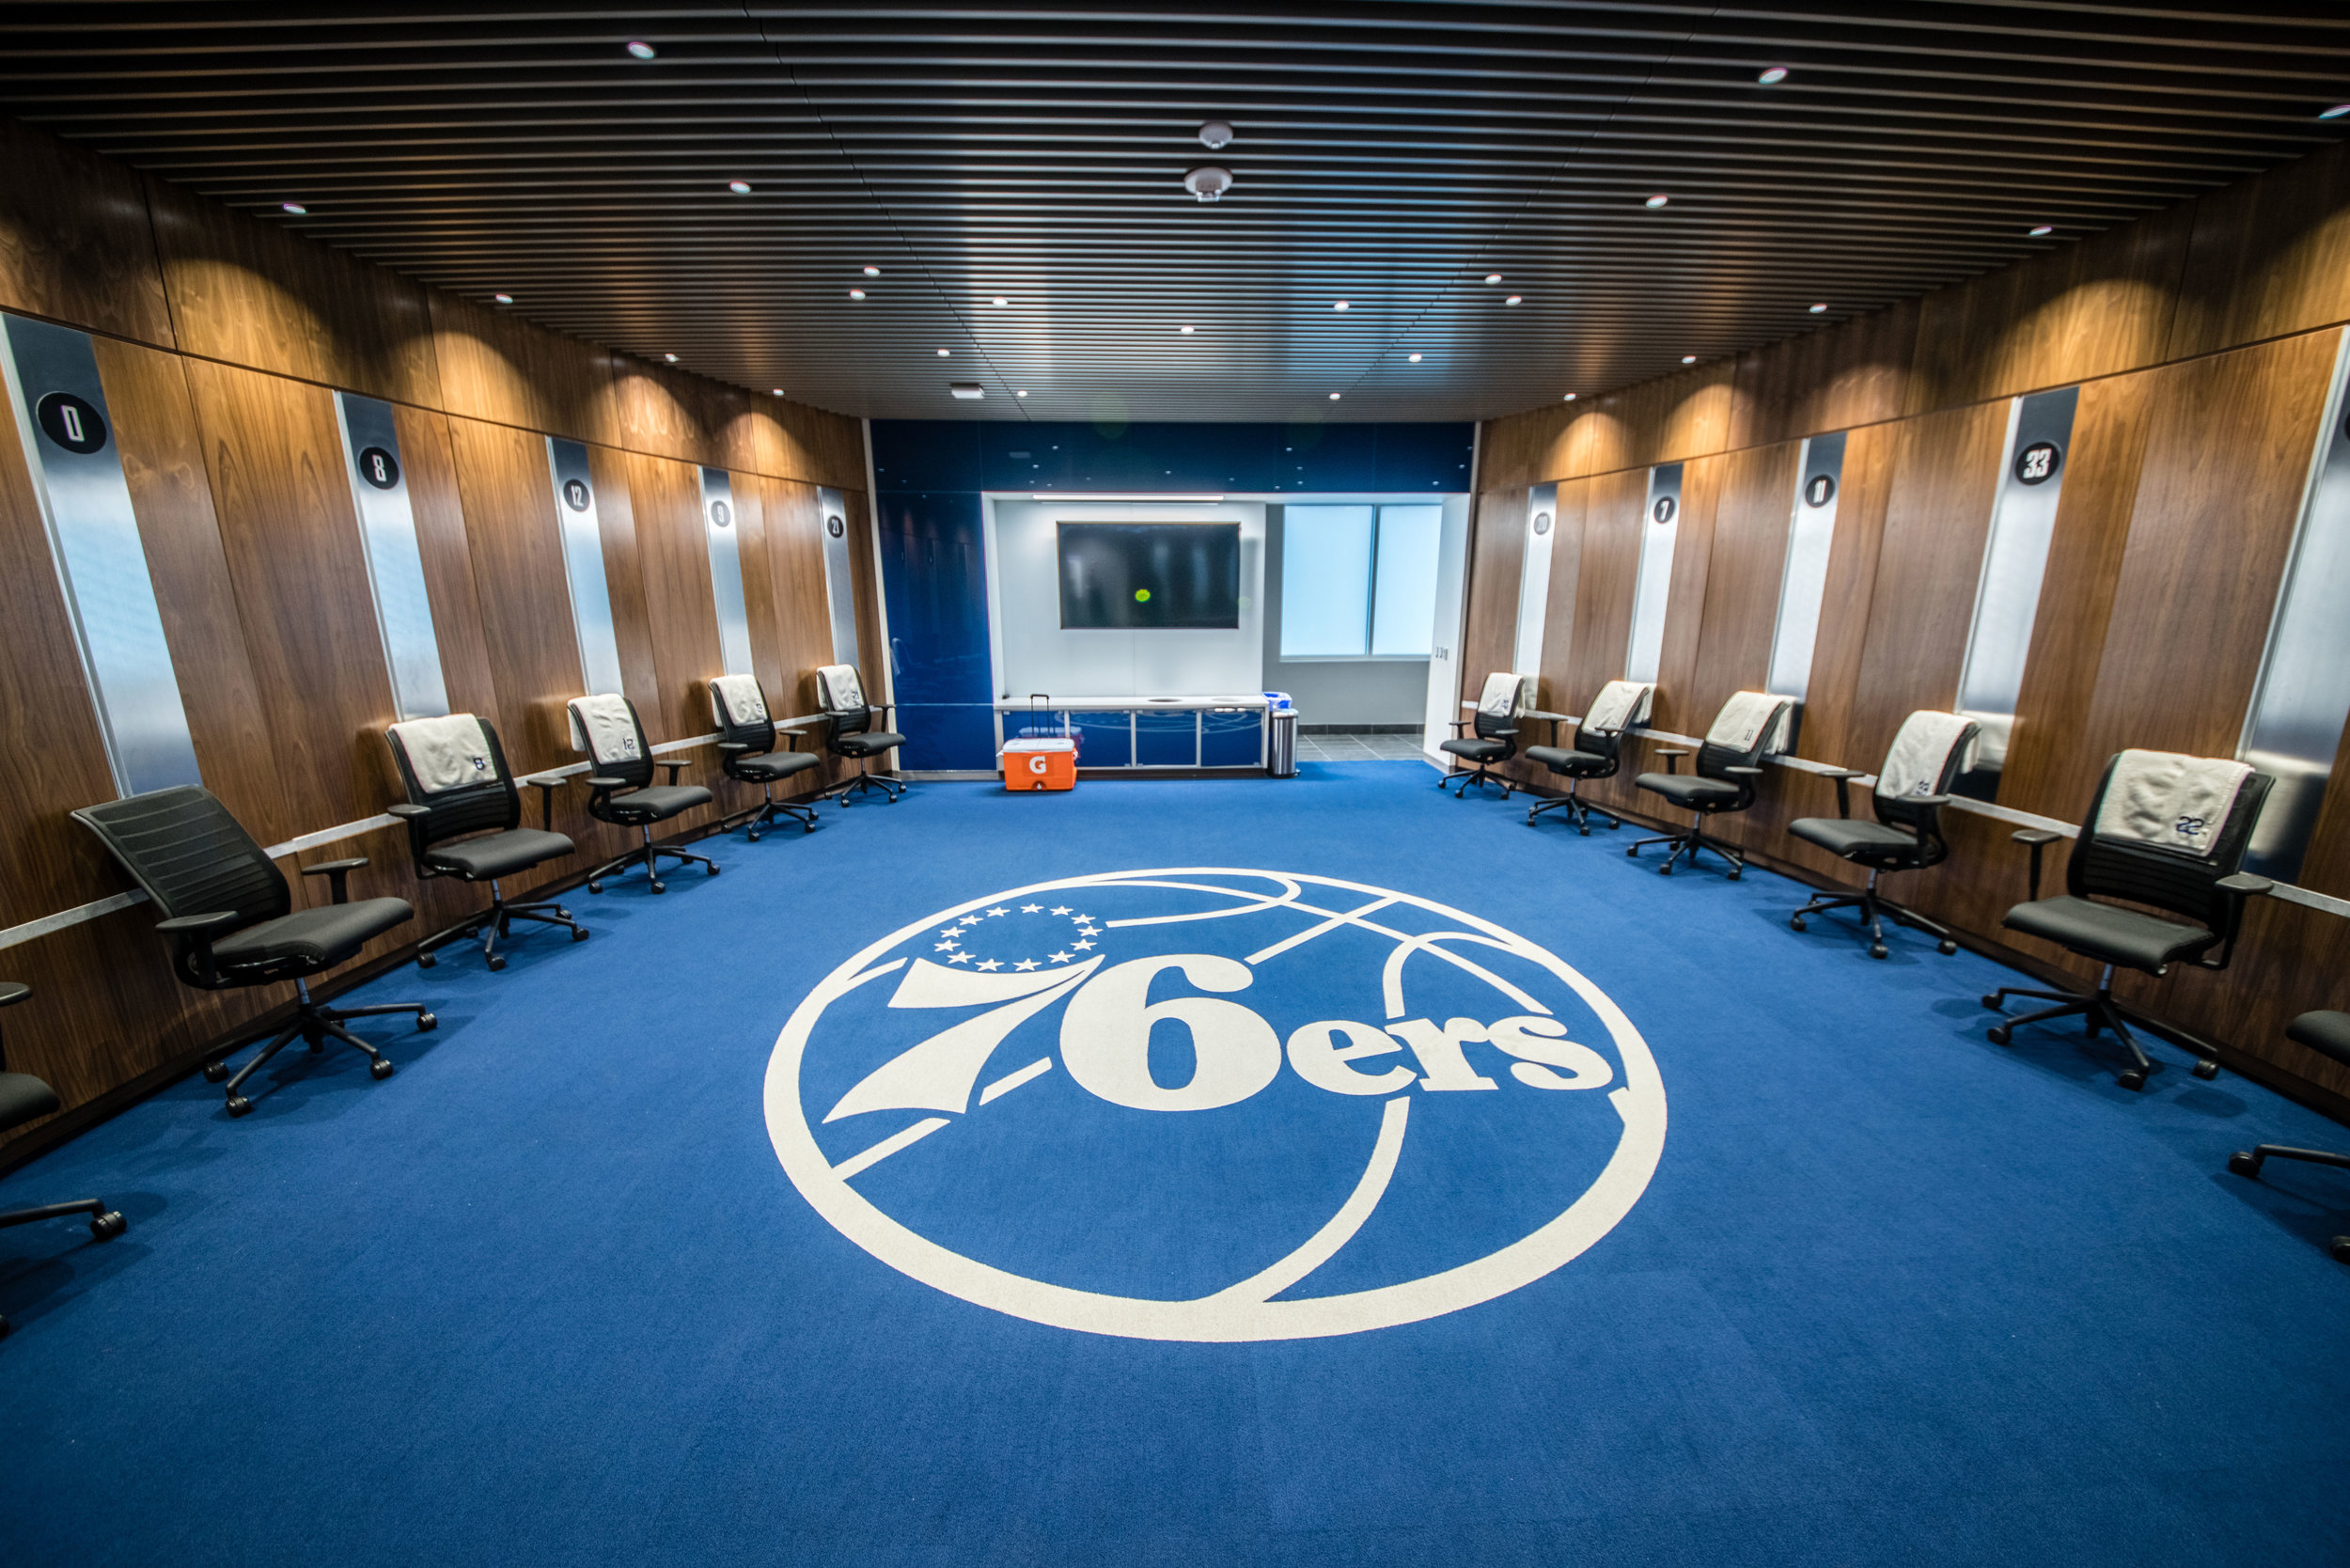 76ers-Locker-Room.jpg